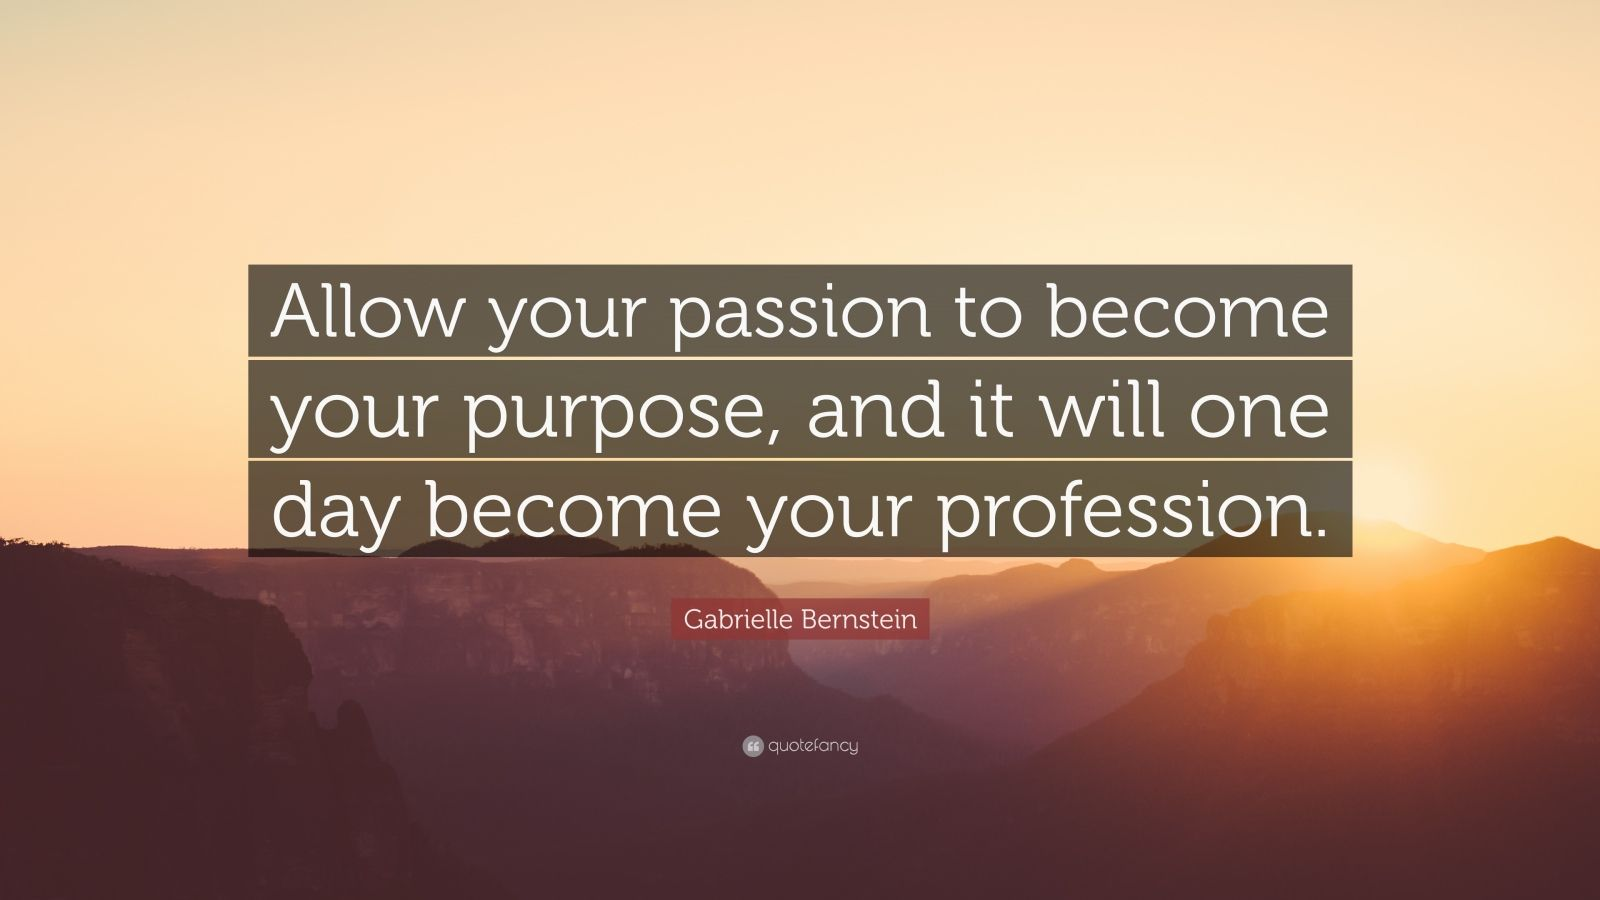 Steve Jobs Motivational Quotes Wallpaper Gabrielle Bernstein Quote Allow Your Passion To Become